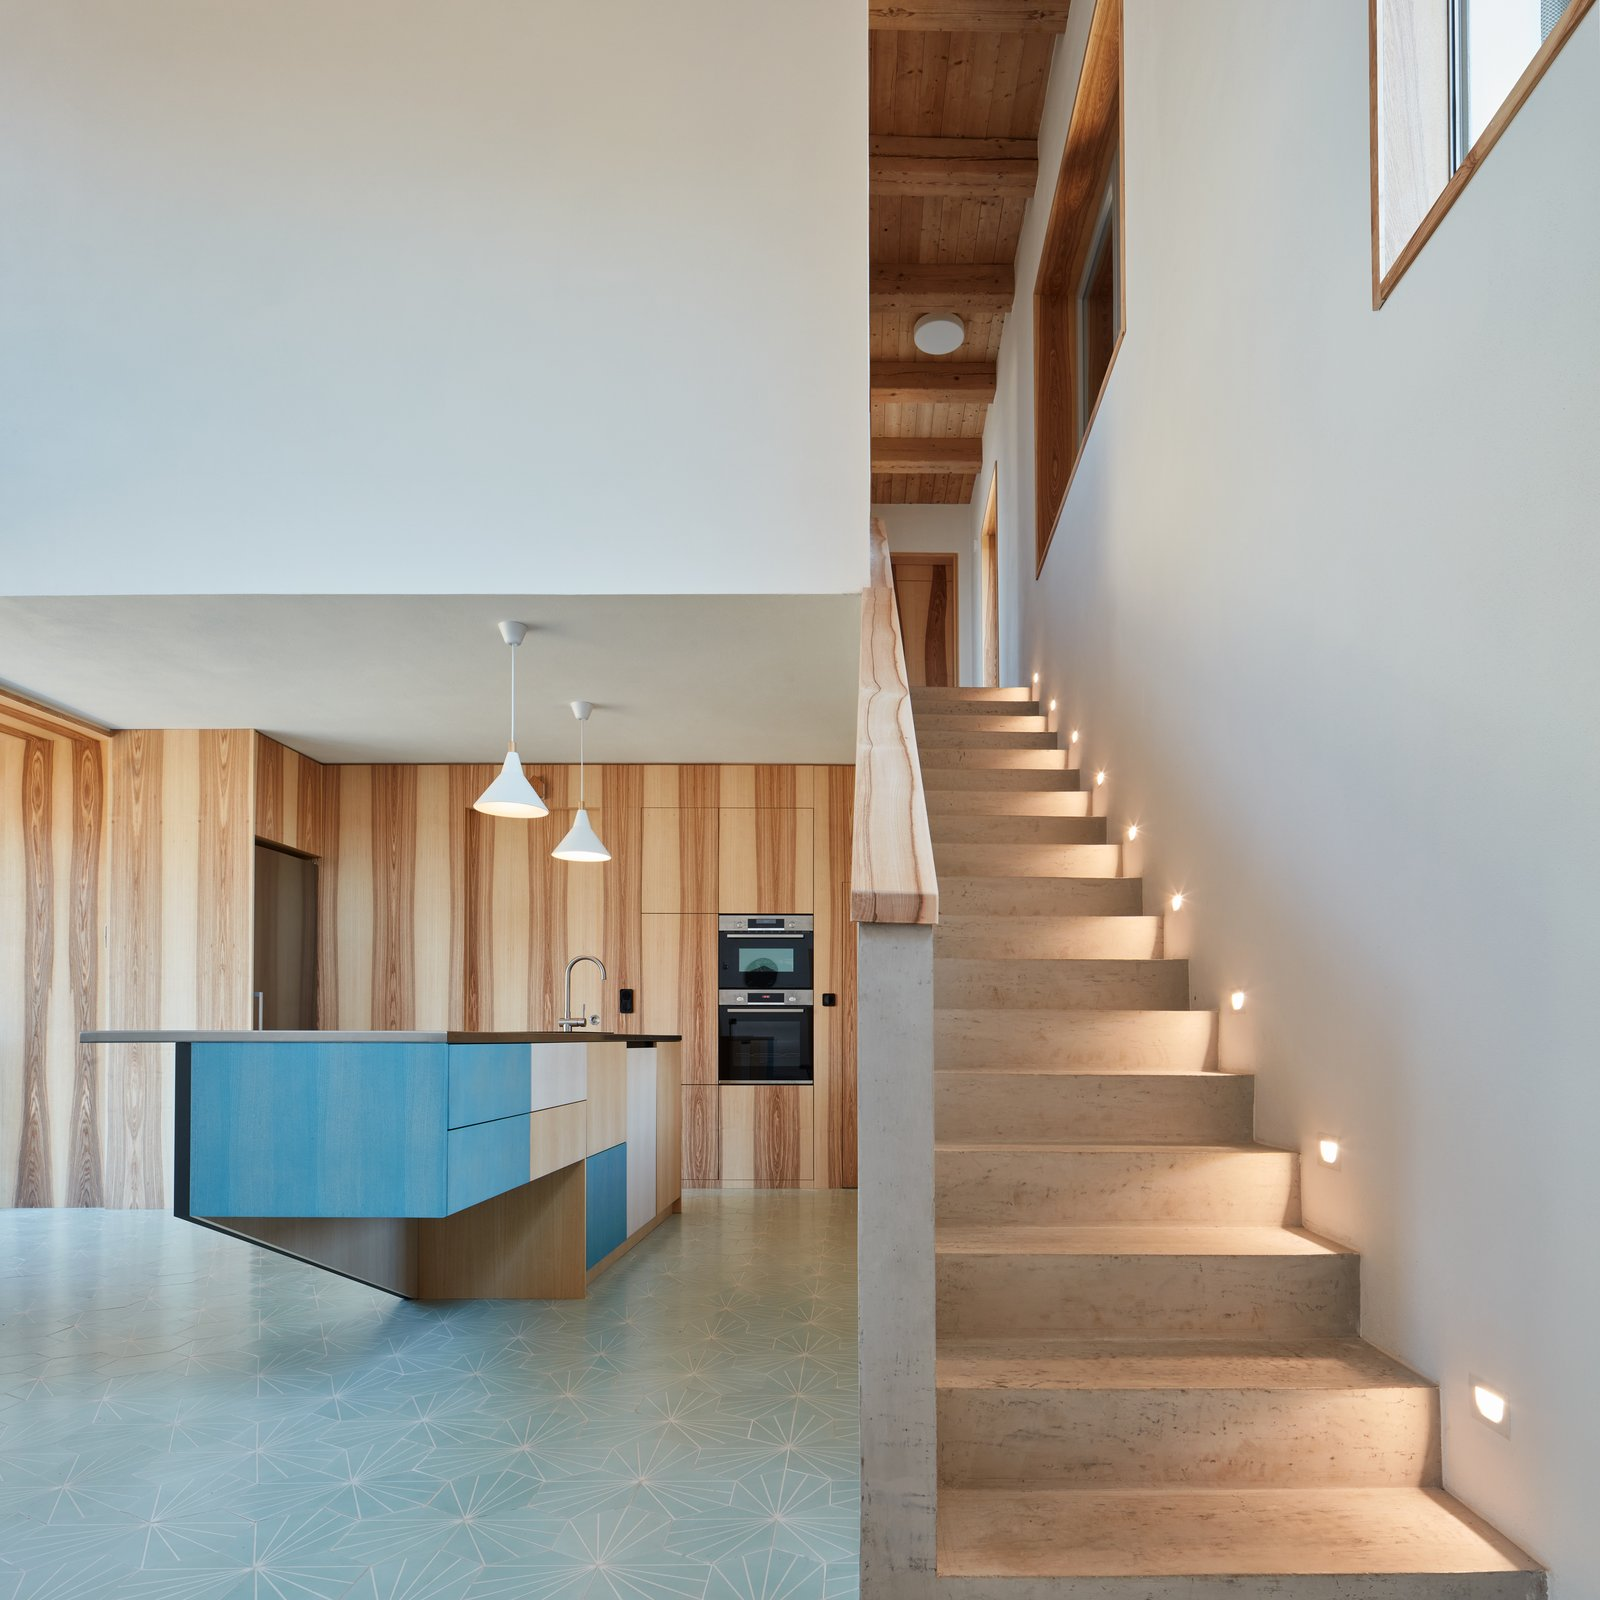 Staircase, Wood Railing, and Wood Tread  Photos from Romantic Ruins Enclose a Modern House in the Czech Republic